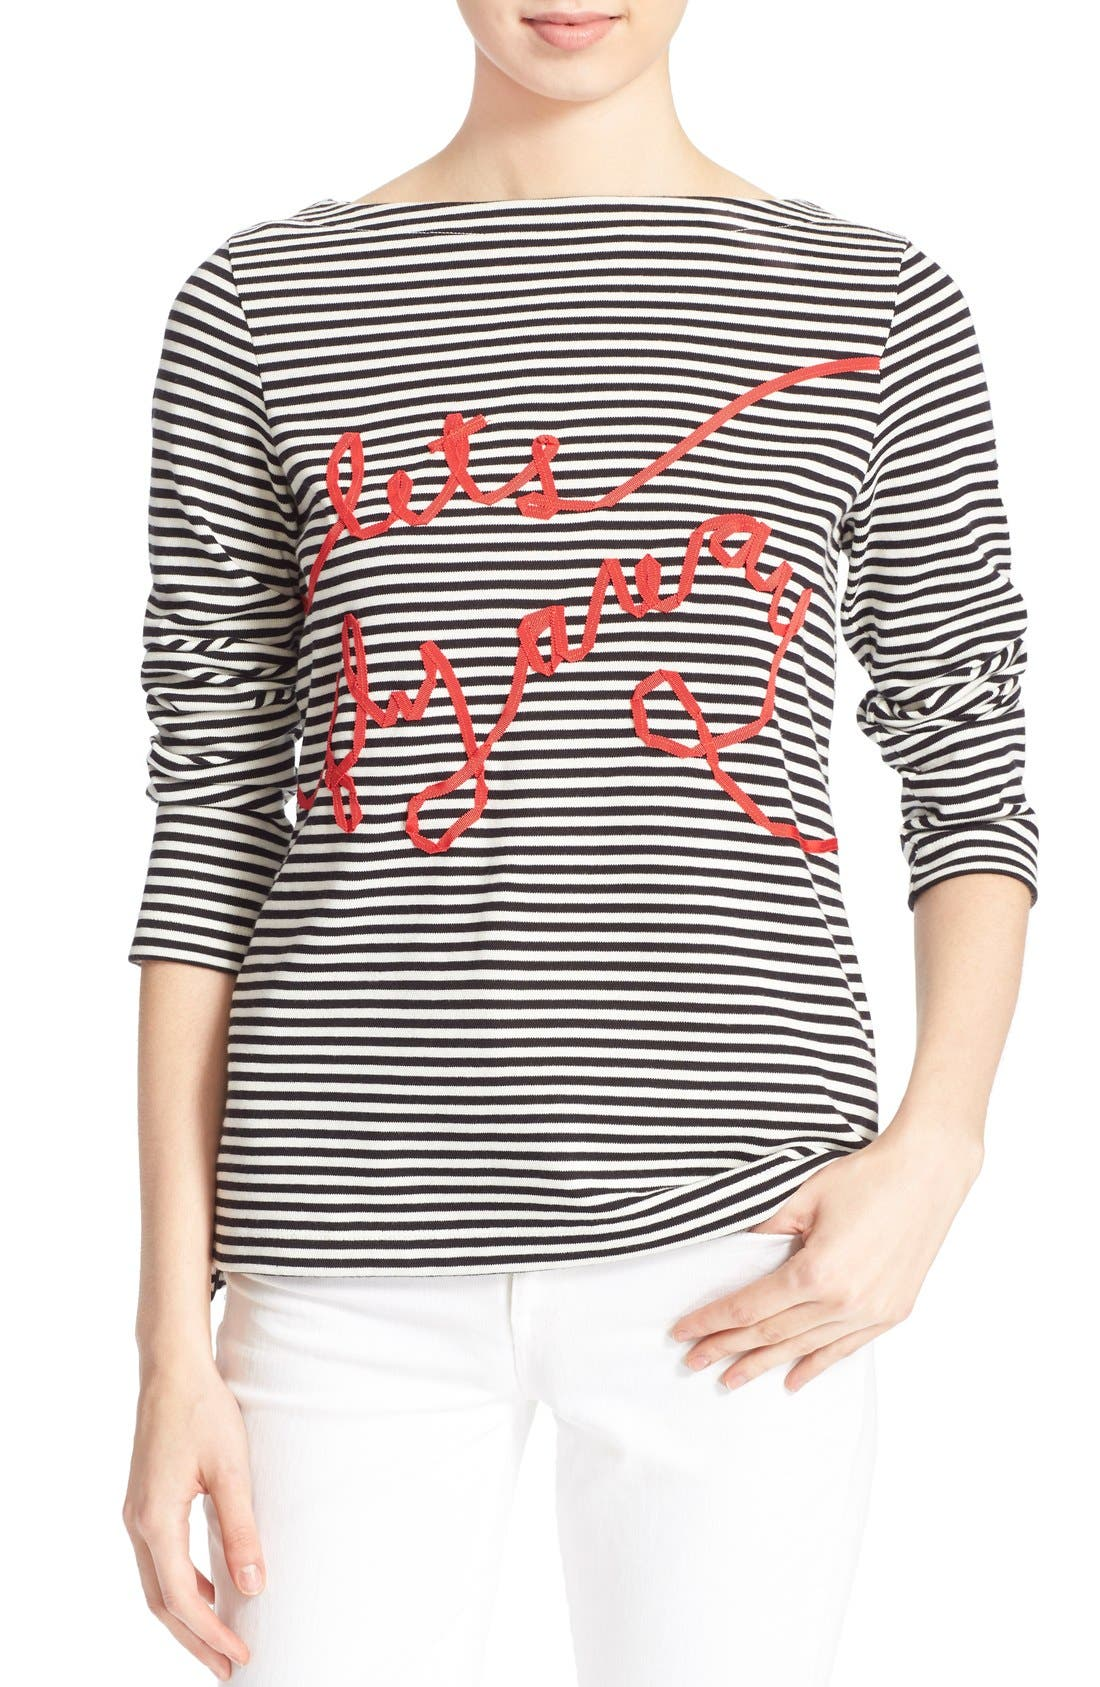 Alternate Image 1 Selected - kate spade new york 'let's fly away' embellished stripe tee